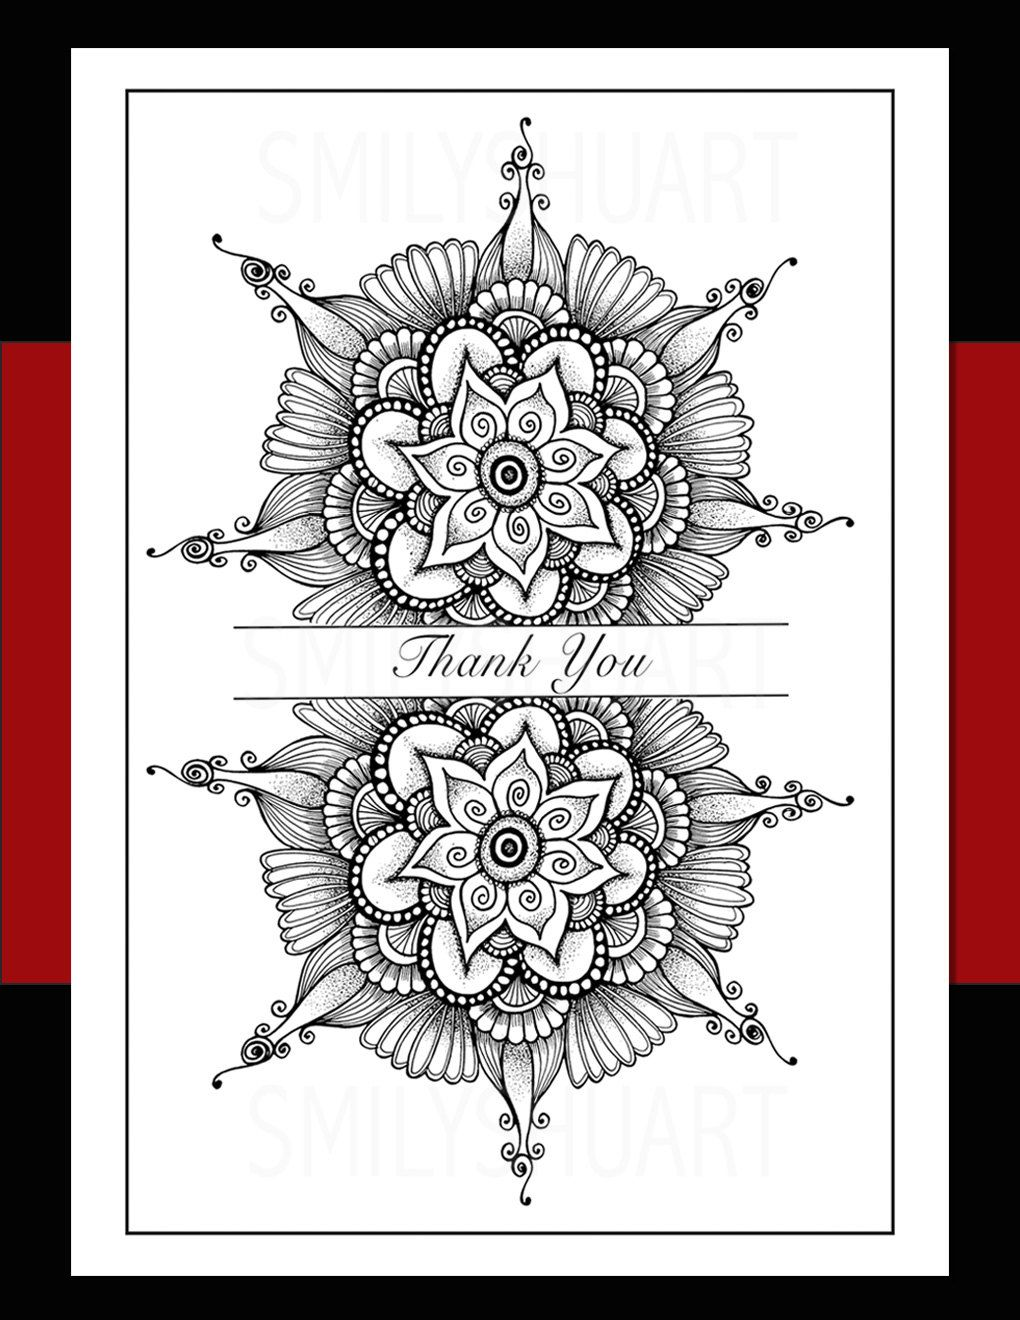 Printable thank you cards diy thanksgiving or holiday gift zentangle mandala coloring page wall art tattoo henna design christmas return cards by